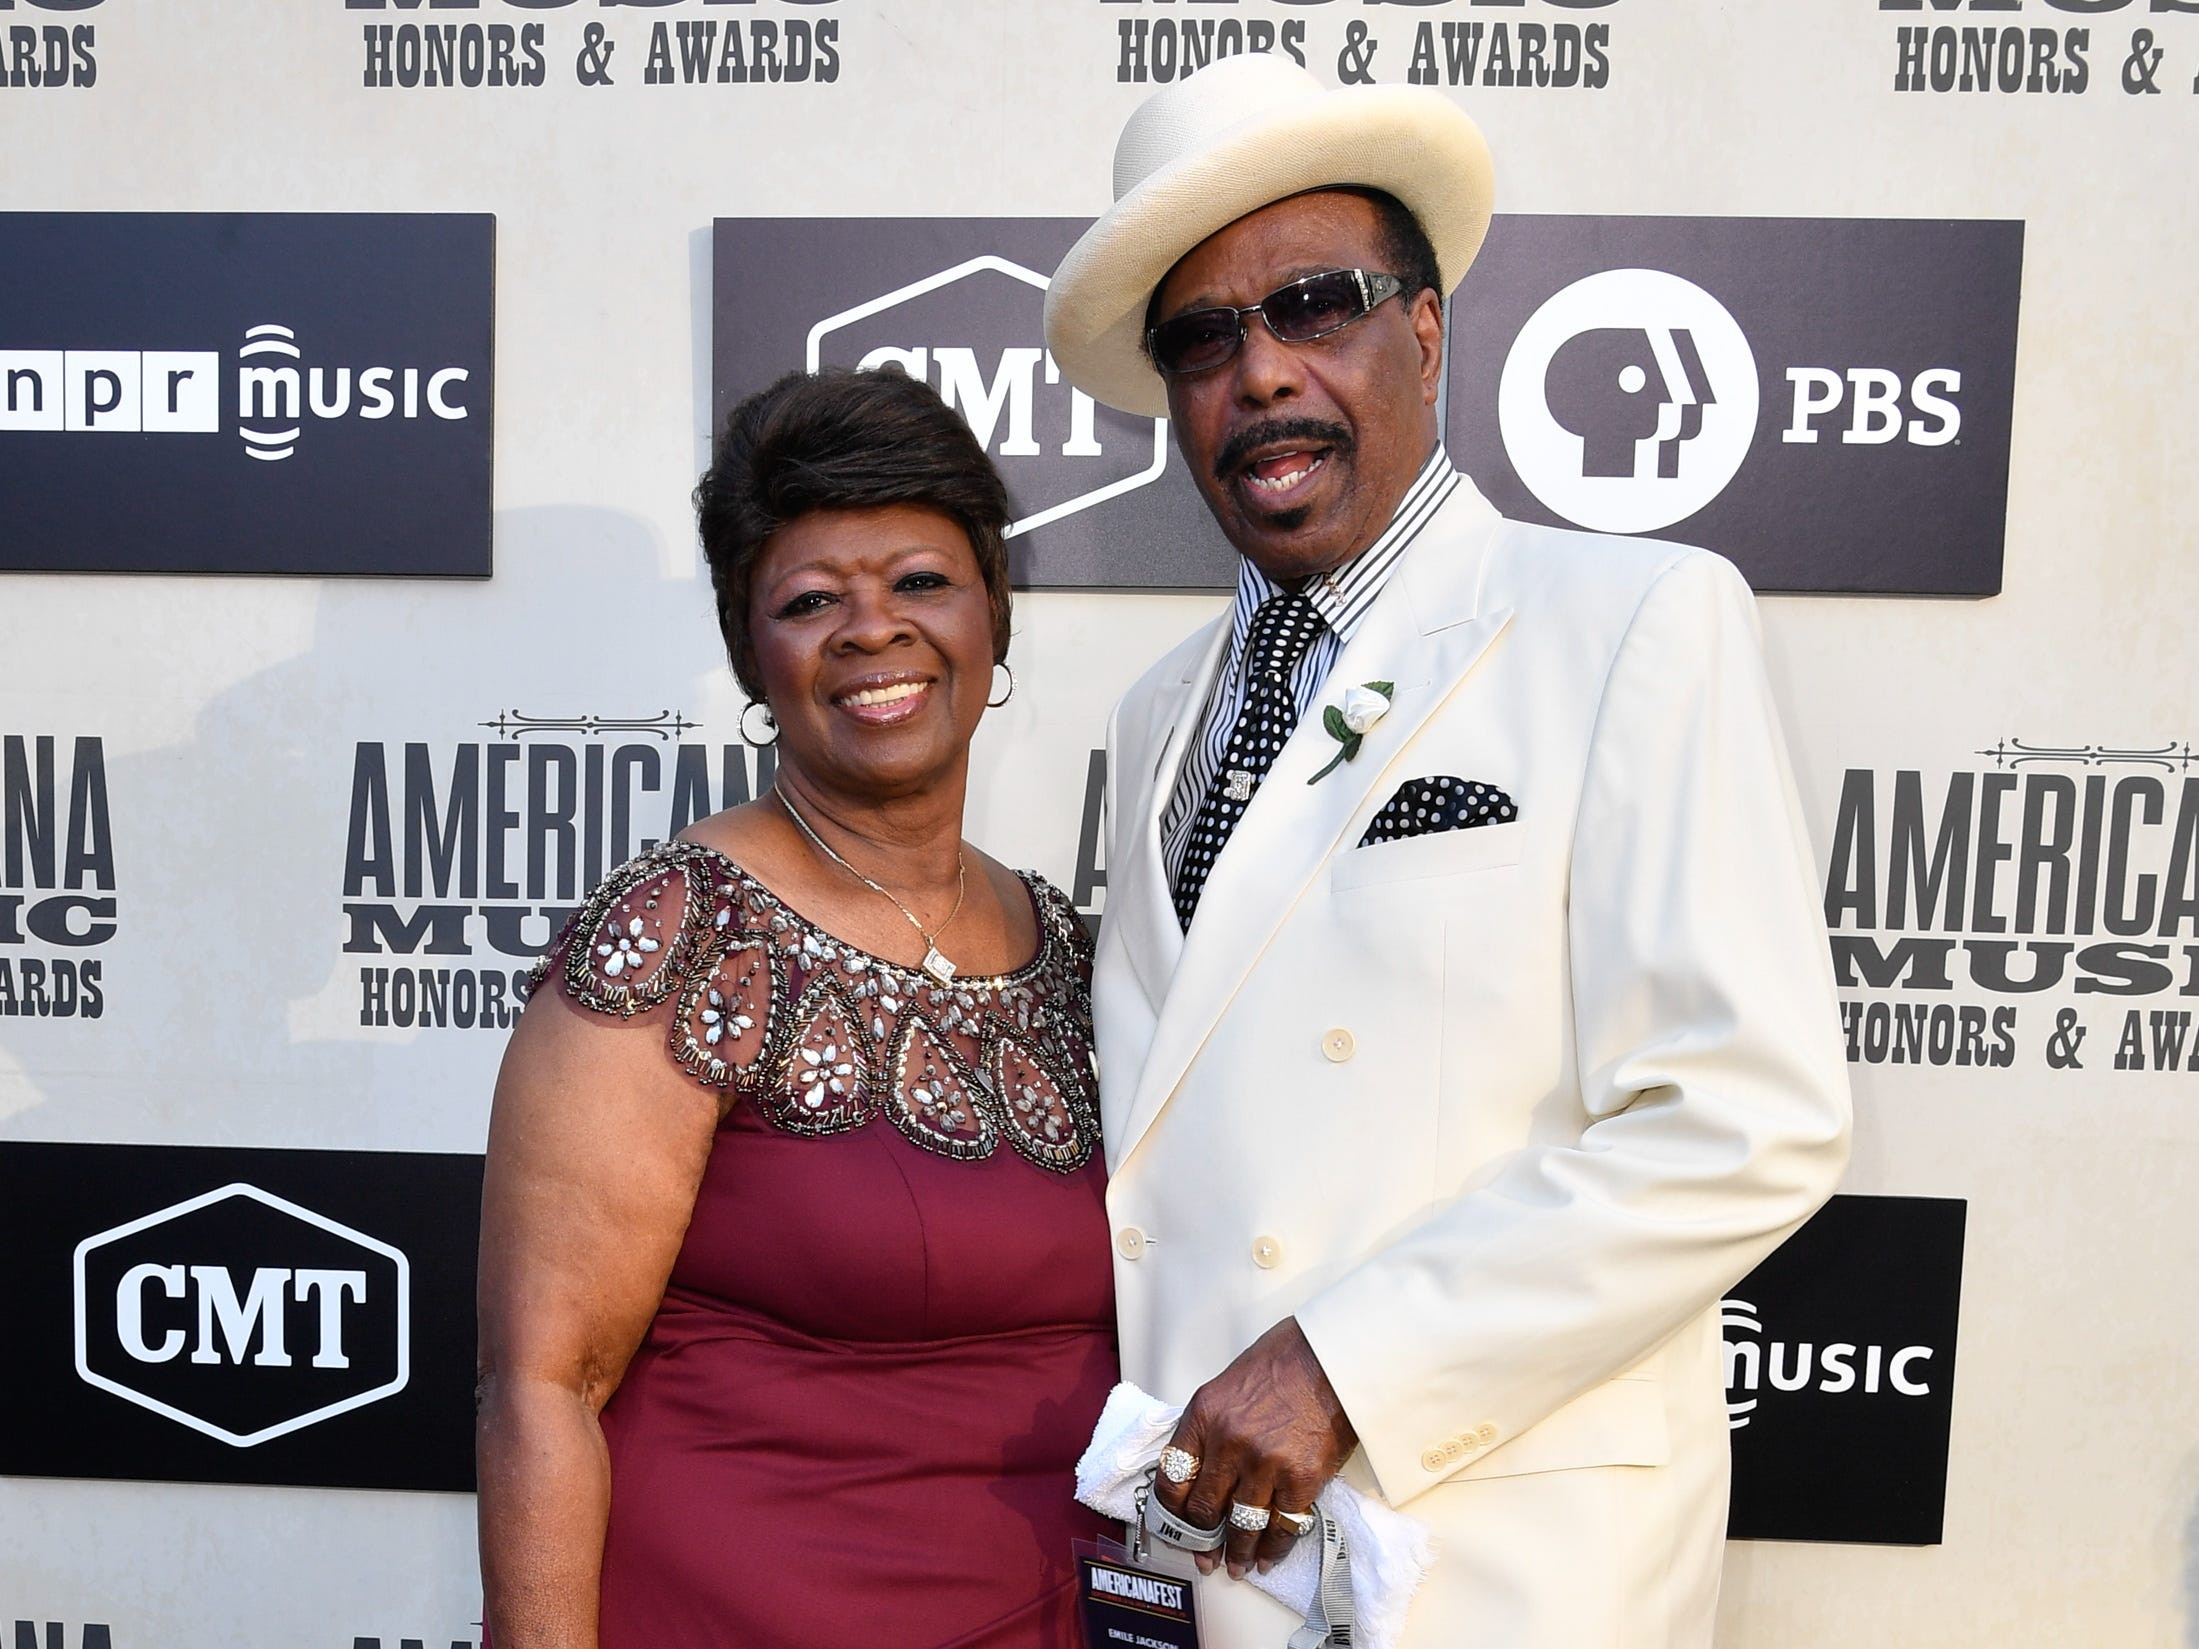 Irma Thomas and Emile Jackson pose on the red carpet before the 2018 Americana Honors and Awards show at the Ryman Auditorium in Nashville, Tenn., Wednesday, Sept. 12, 2018.